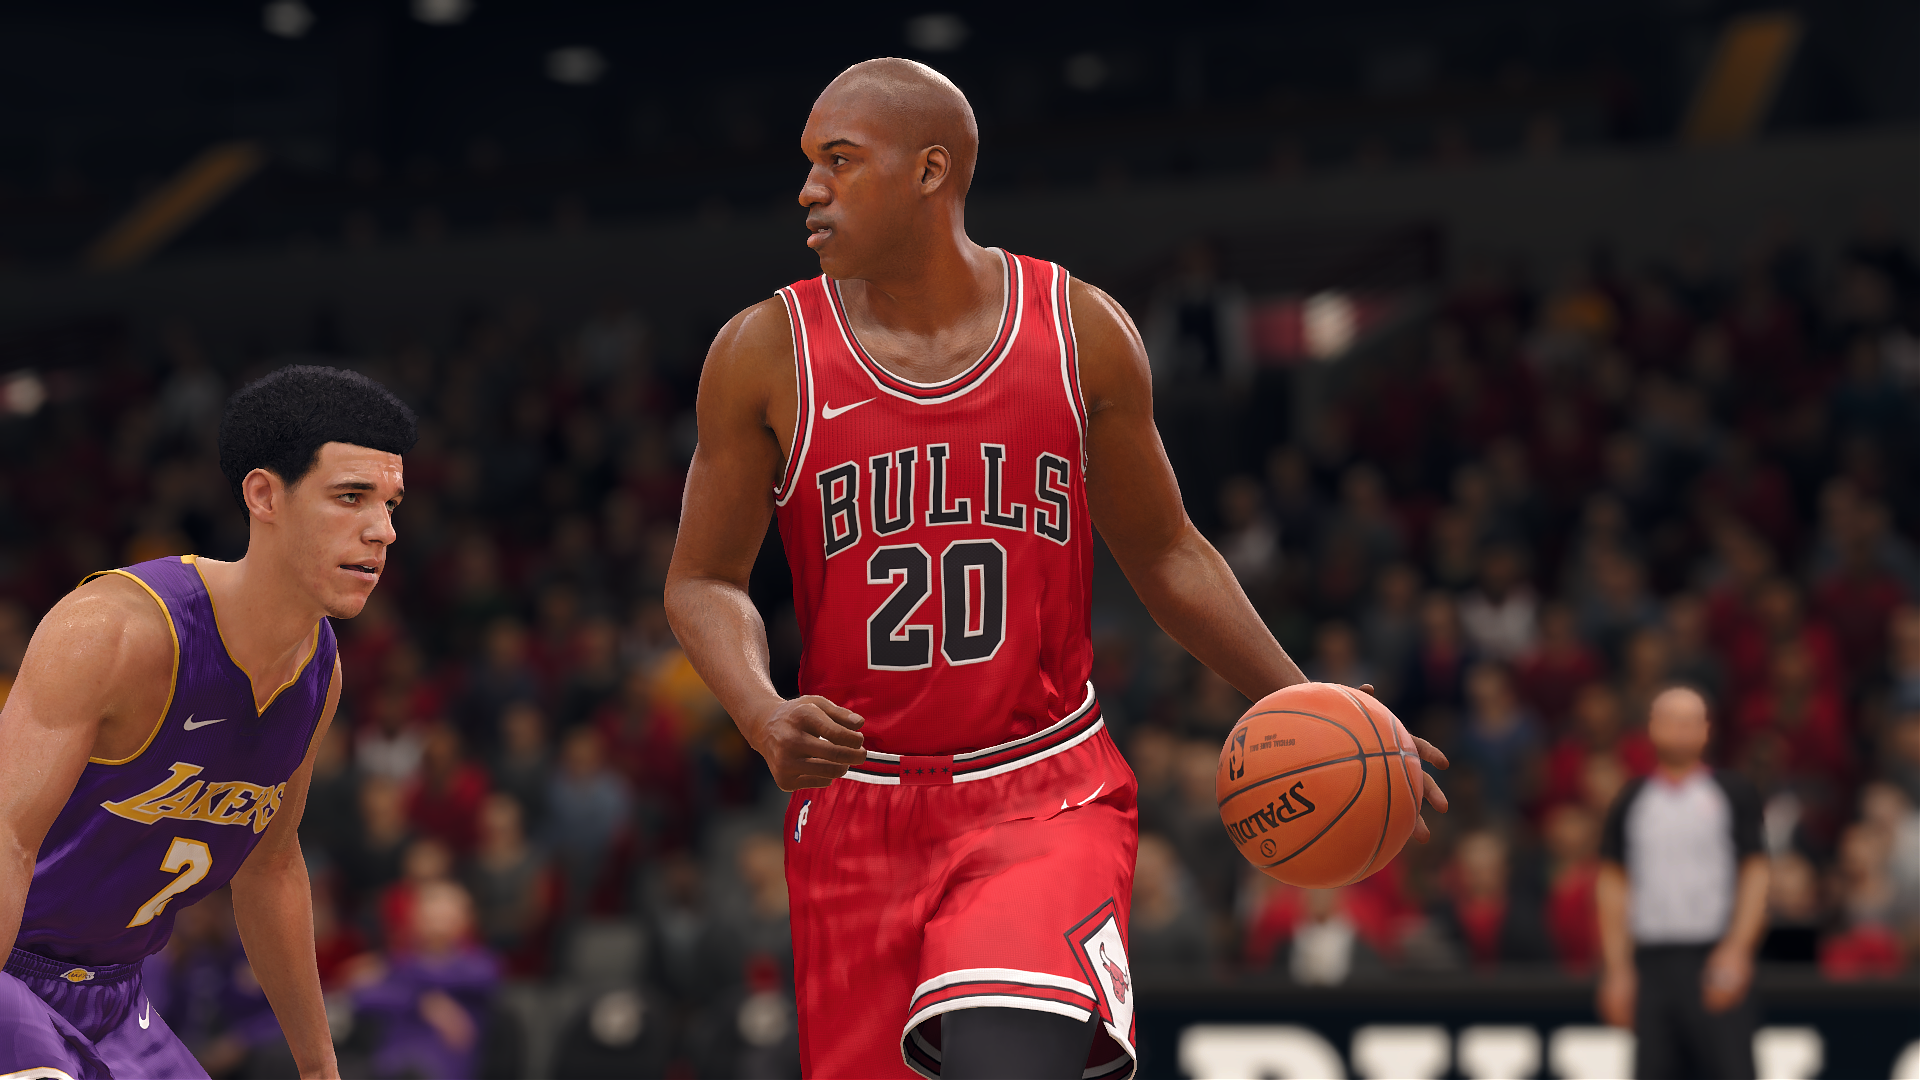 Latest NBA Live 18 Roster Includes Melo Trade, Wade Signing | NLSC